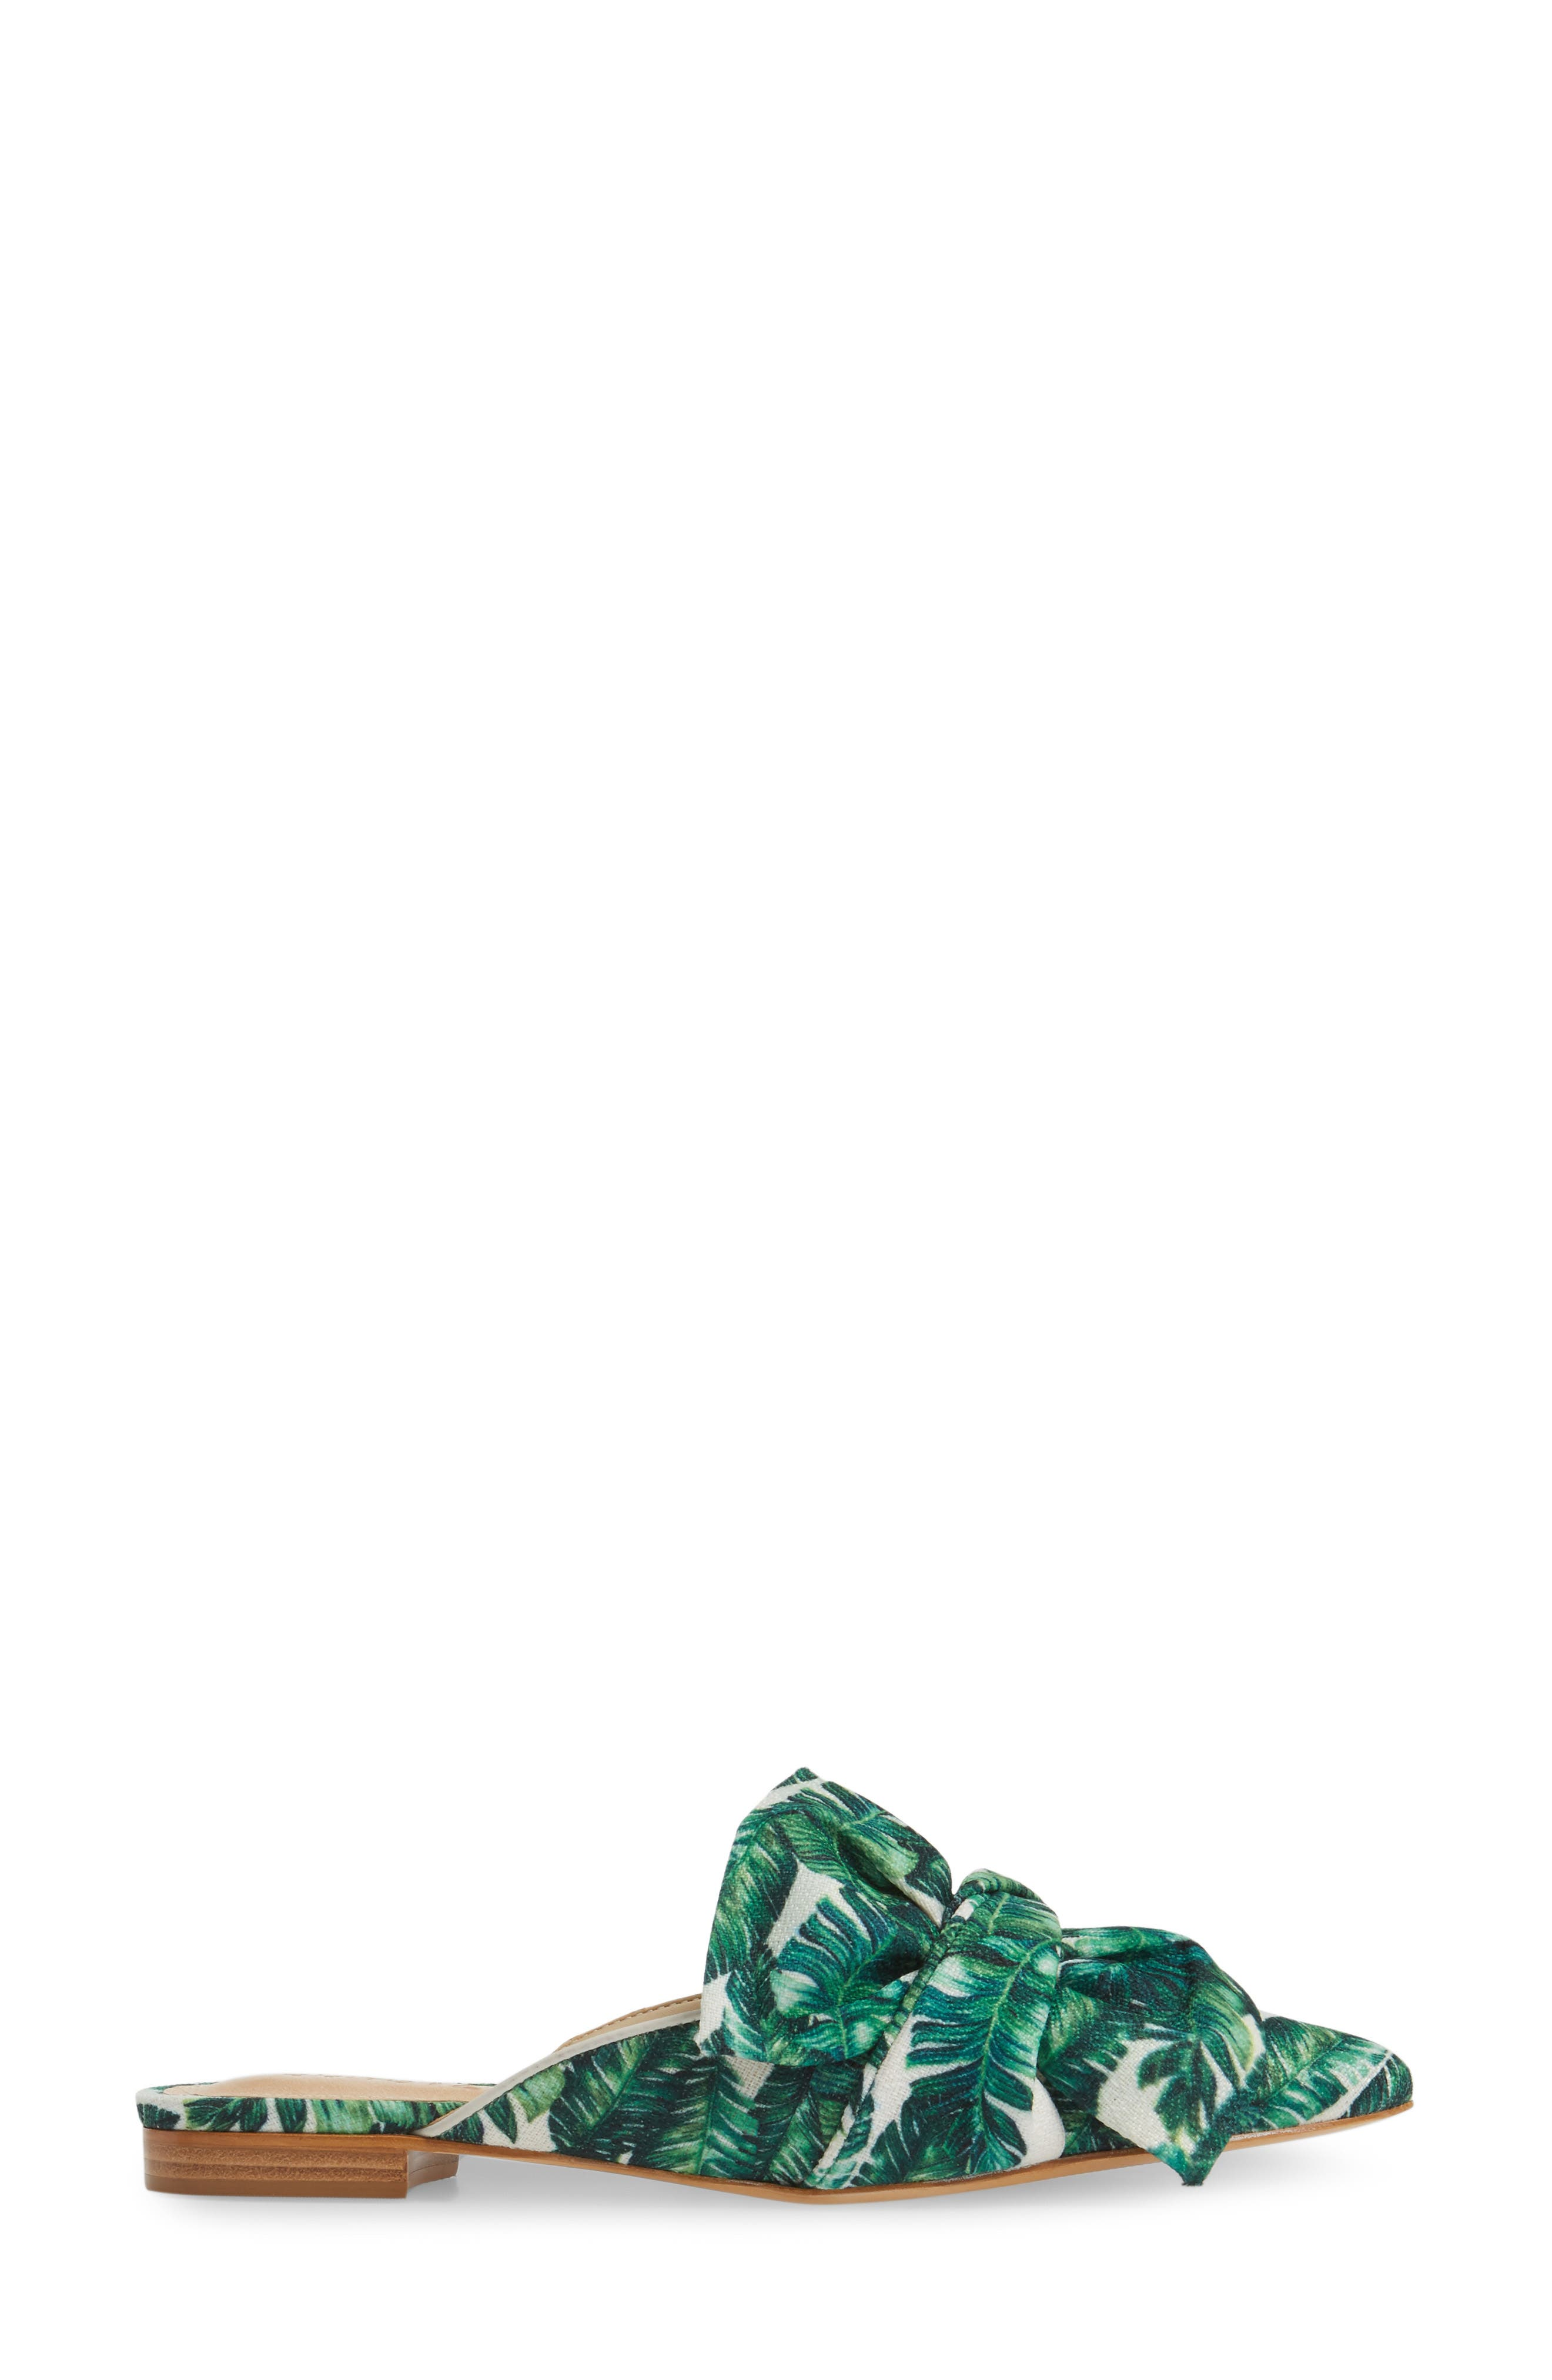 SCHUTZ,                             D'Ana Knotted Loafer Mule,                             Alternate thumbnail 3, color,                             100